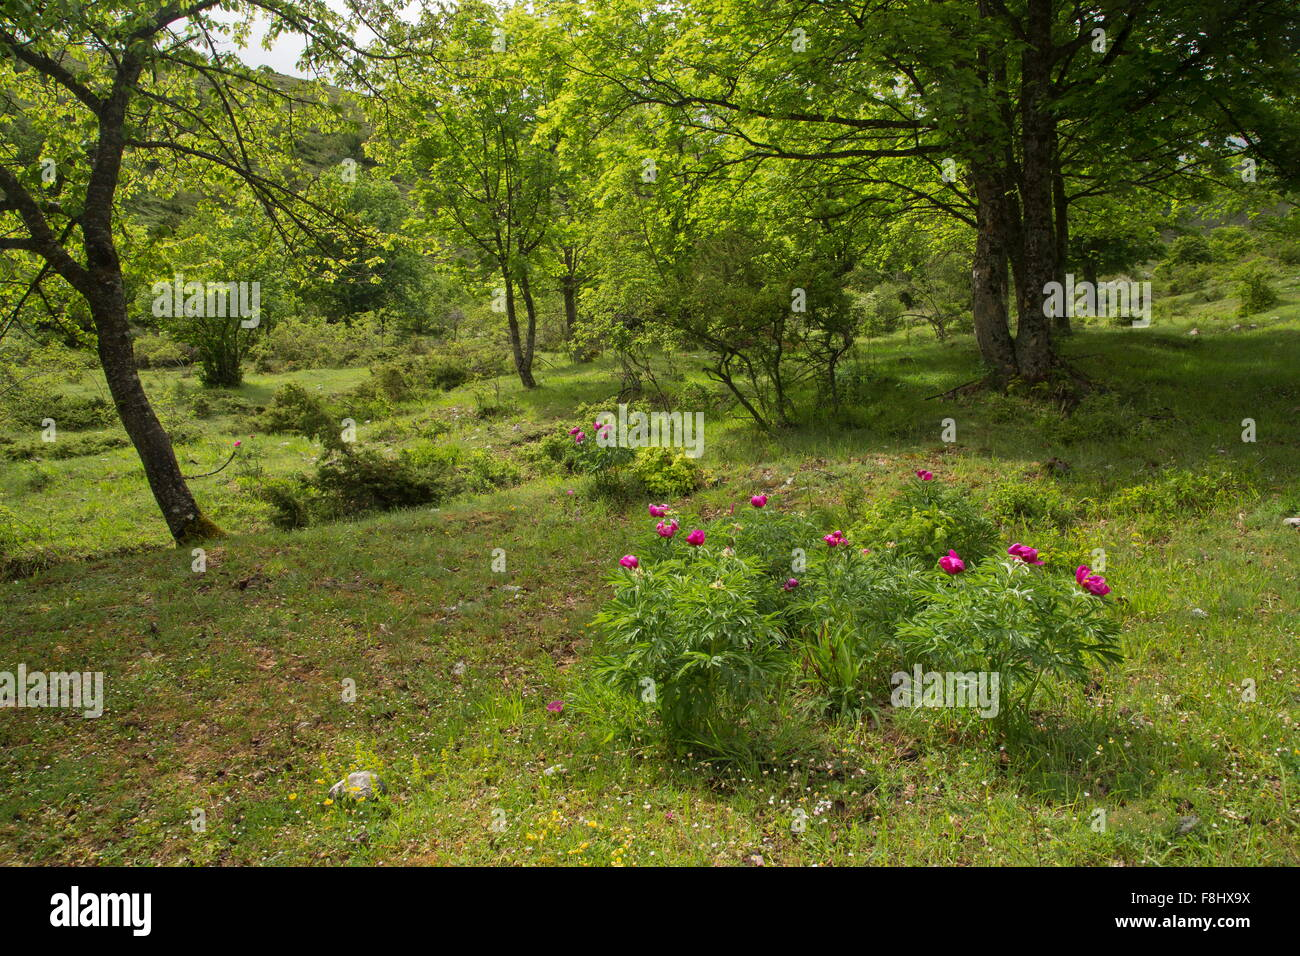 Common peony, Paeonia officinalis in flower in the Gran Sasso National Park, Apennines, Italy. - Stock Image